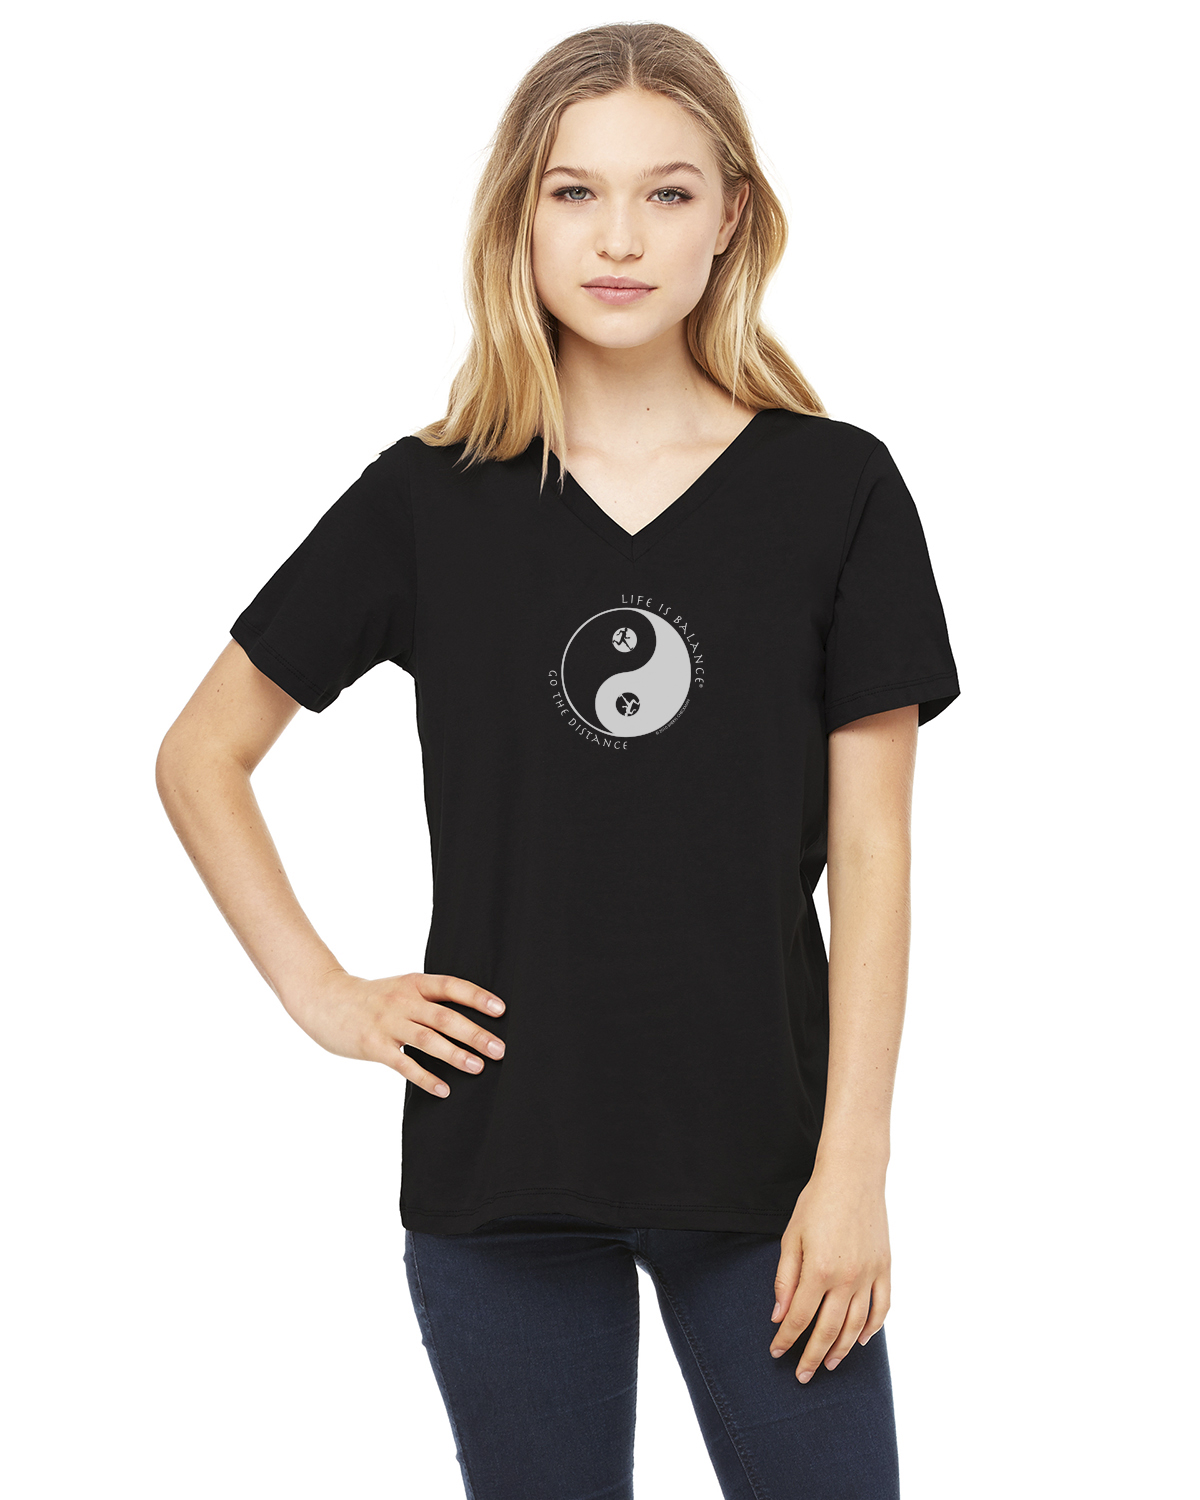 Women's short sleeve v-neck (black)